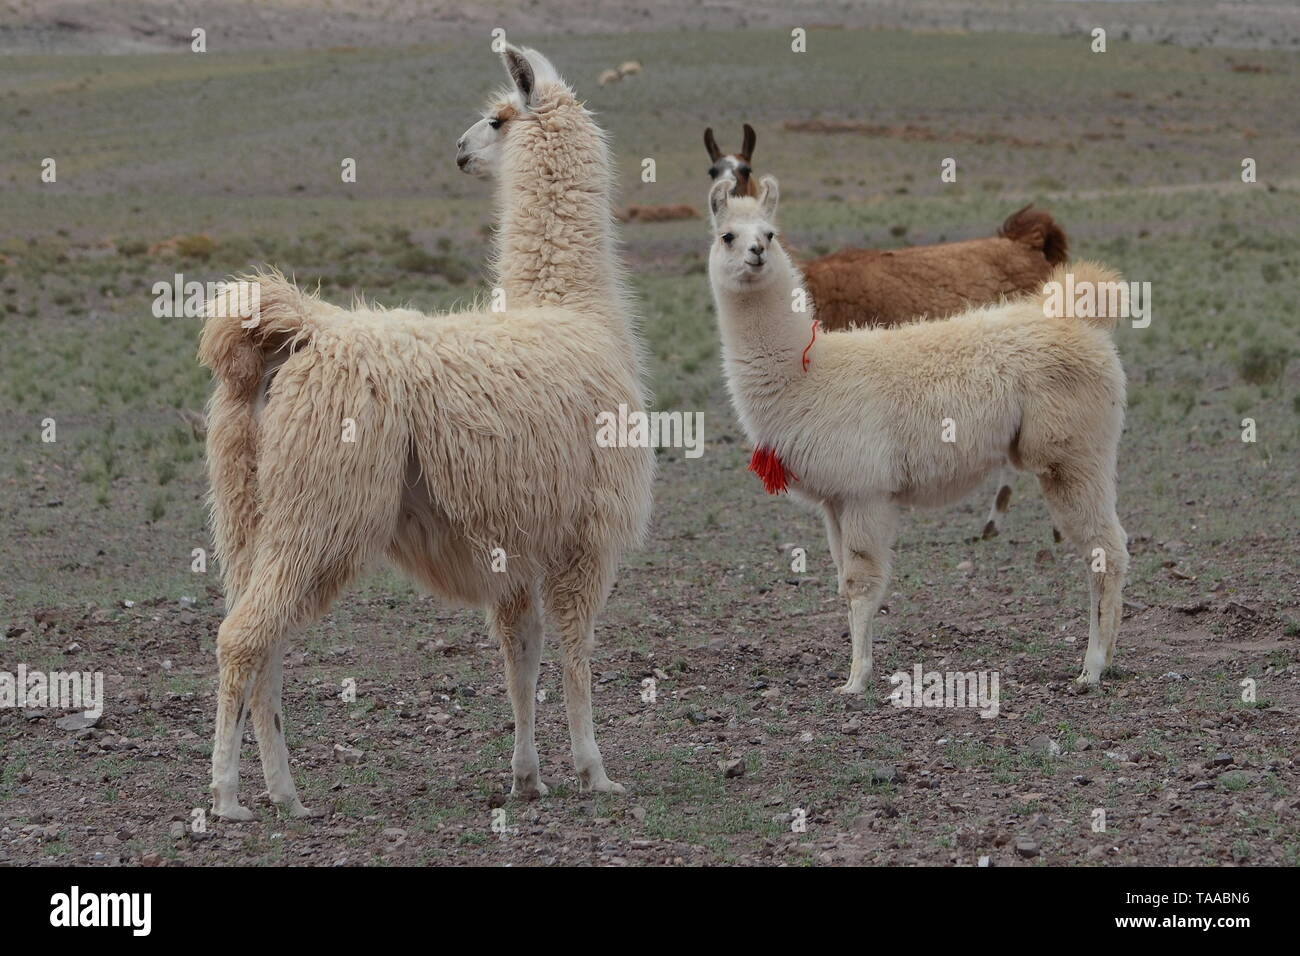 LLAMAS IN CHILE. - Stock Image